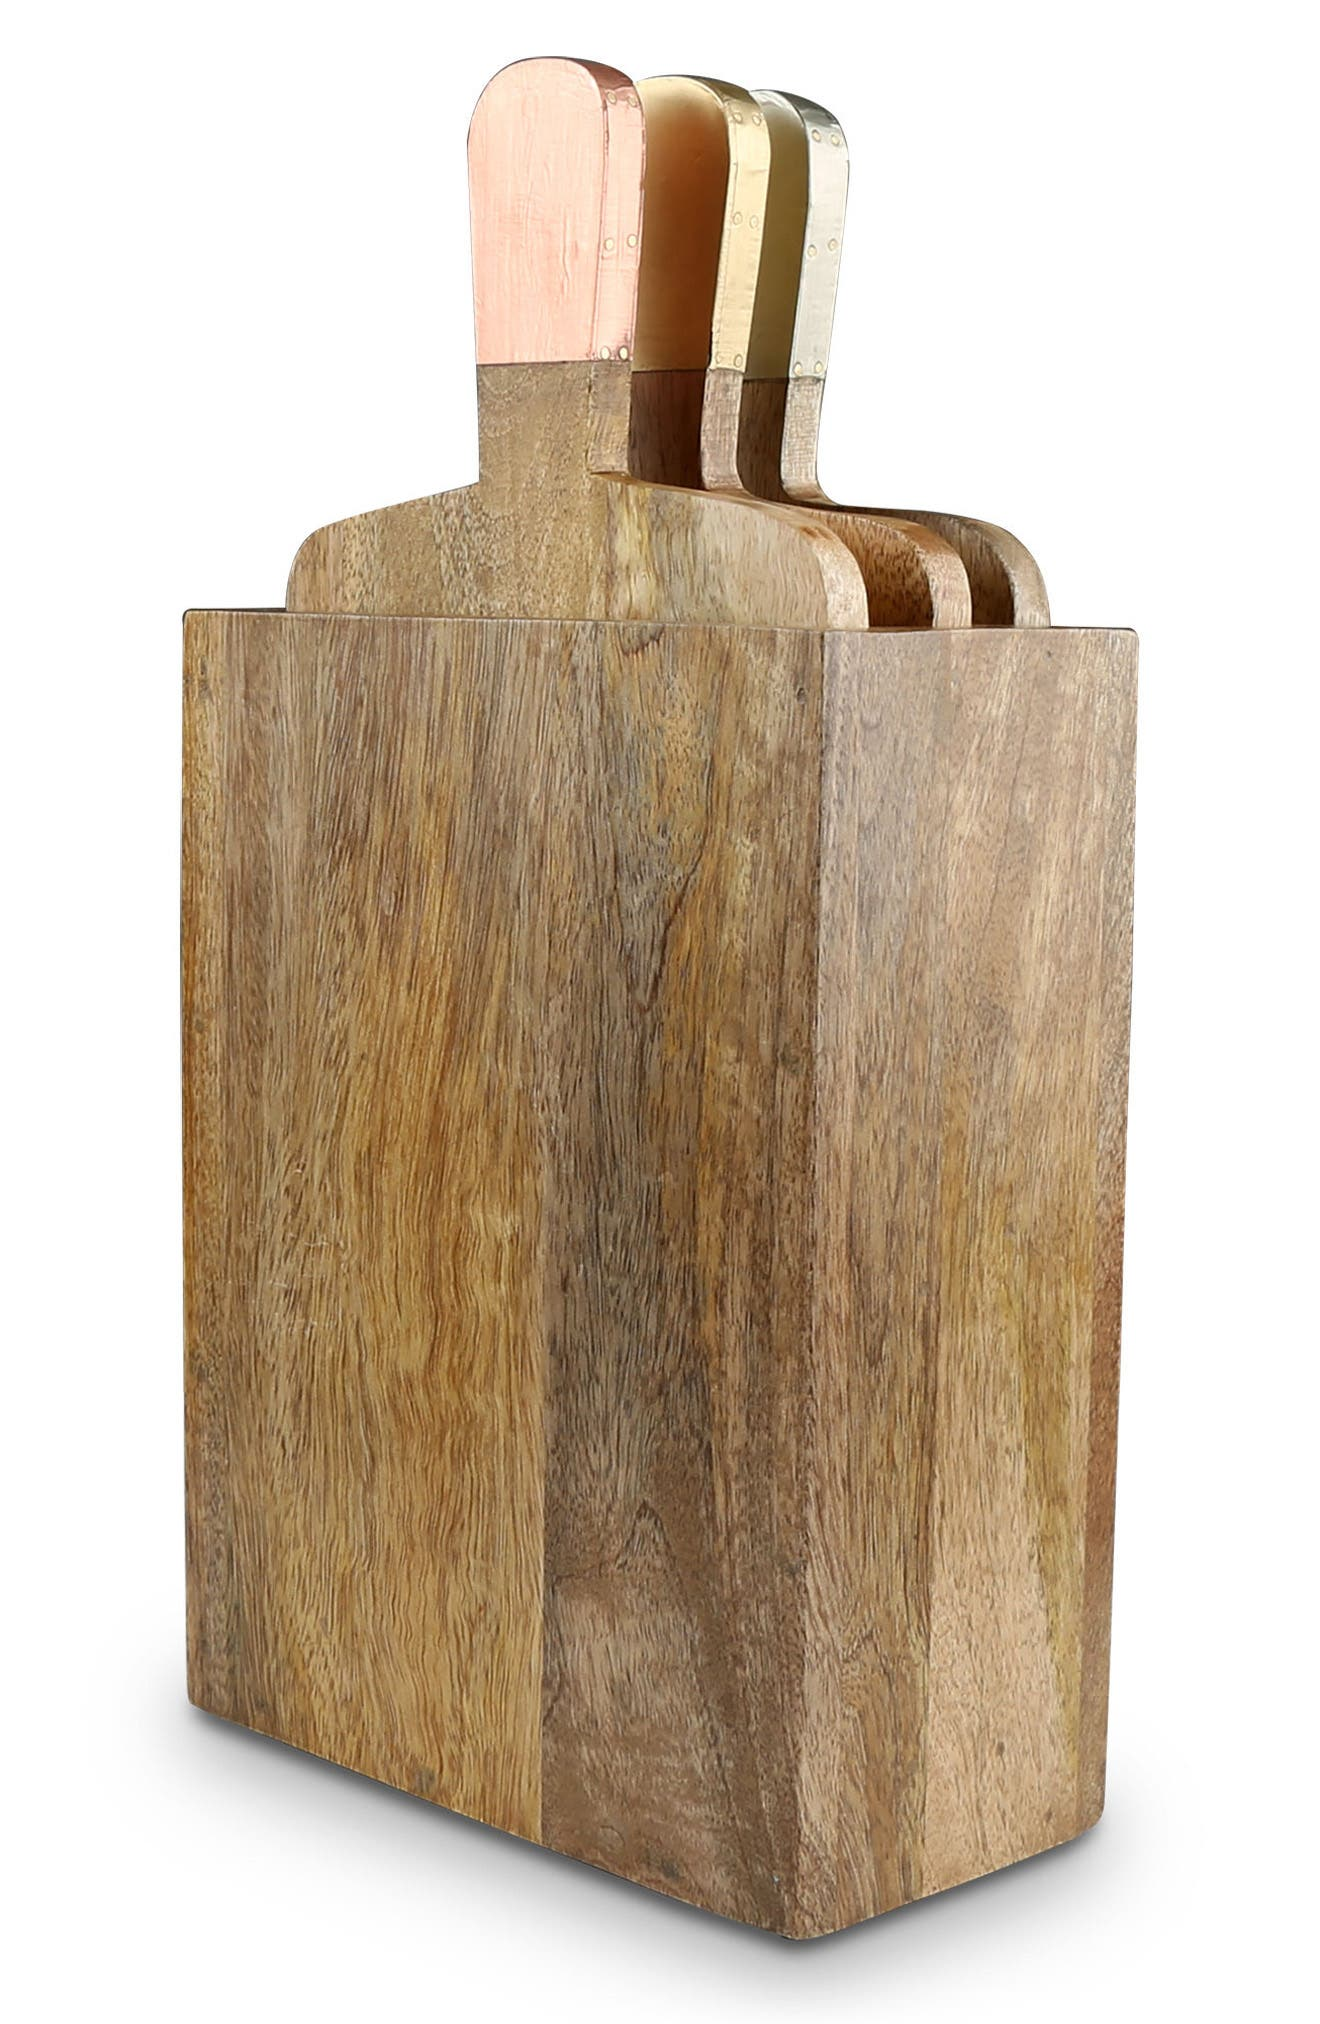 Alternate Image 1 Selected - Thirstystone Set of 3 Mango Wood Serving Boards & Holder